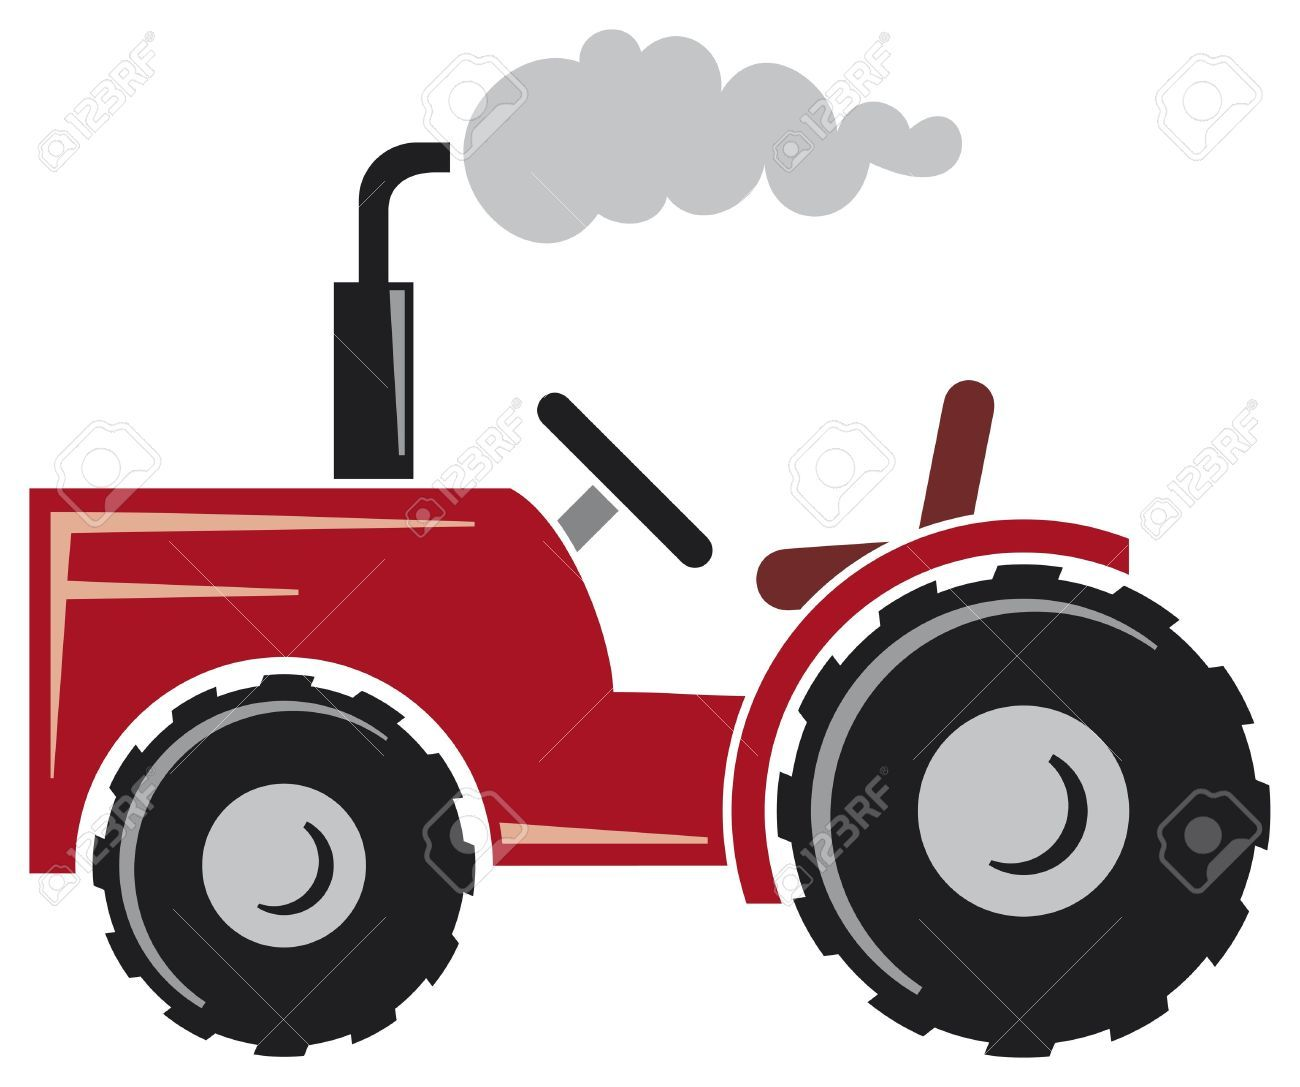 Tractor Cartoon Stock Vector Illustration And Royalty Free Tractor.